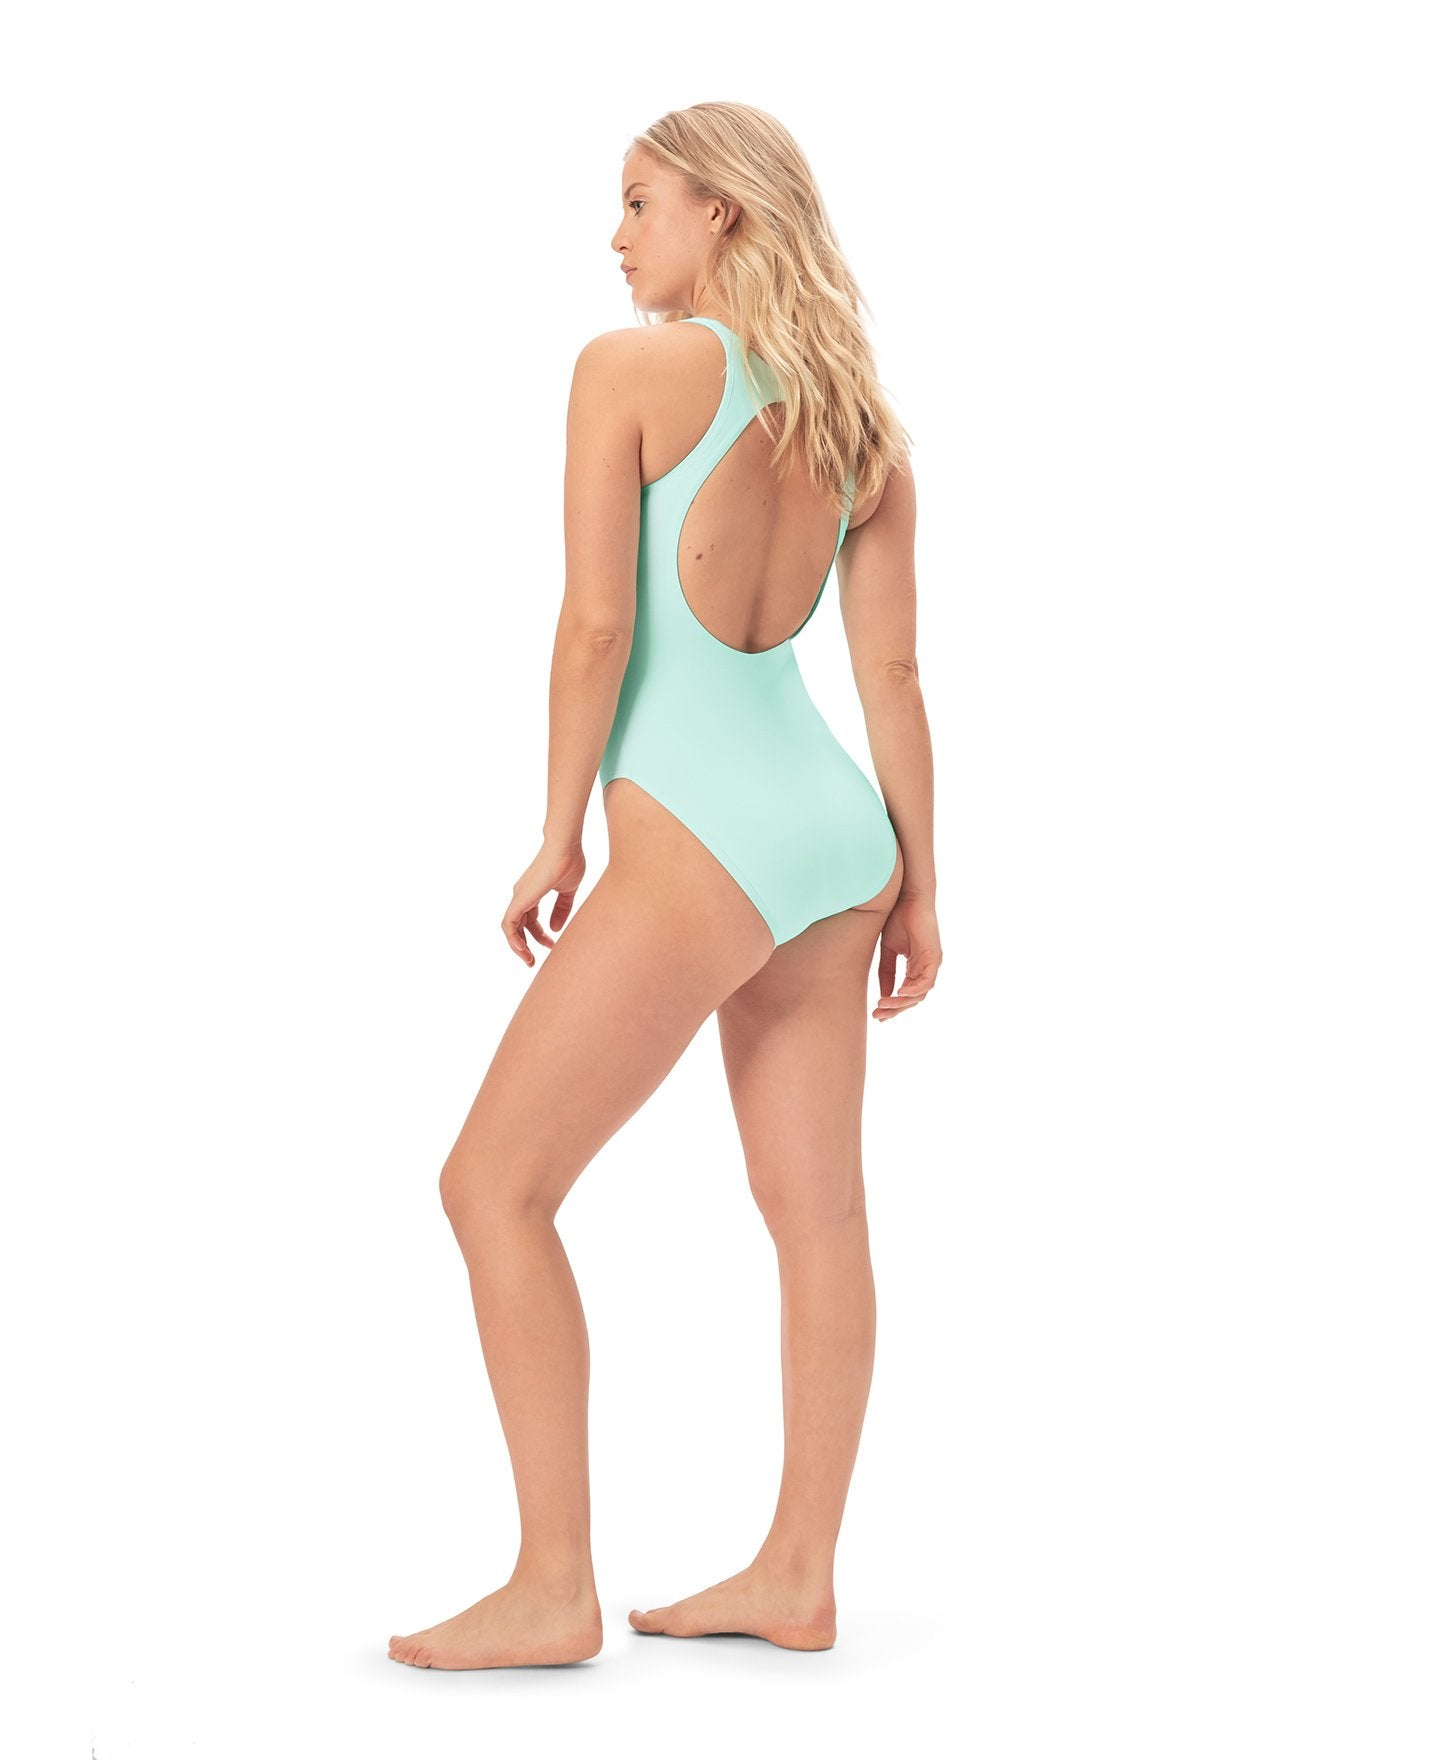 The Catalina - Flat - Aqua - Classic - Final Sale